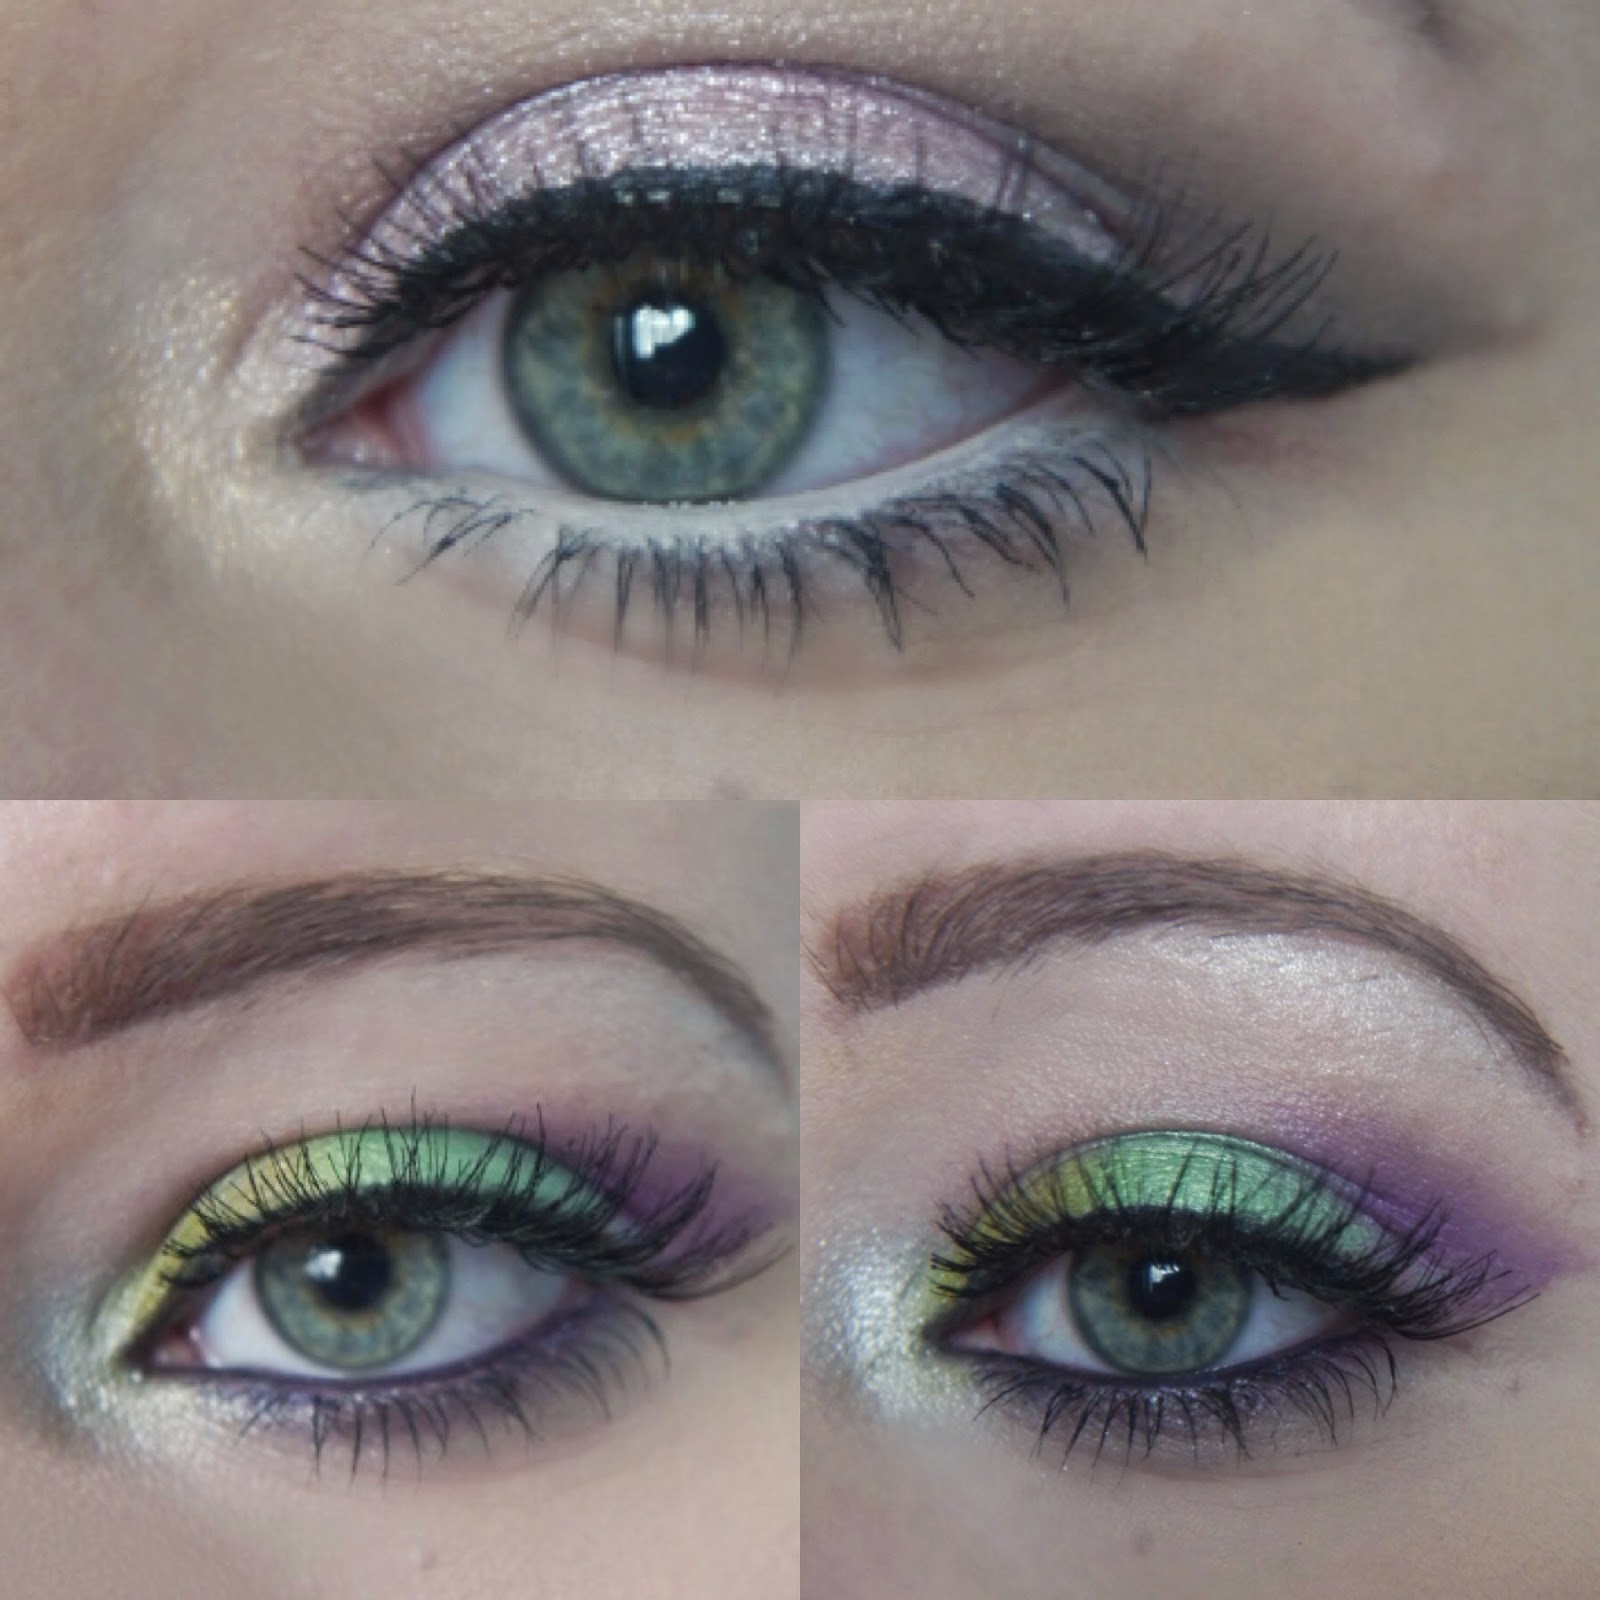 2fdc390e237 I have read a few people saying they're too thick and bold for everyday wear,  but I totally disagree. These are a few looks I've worn with the lashes  lately ...